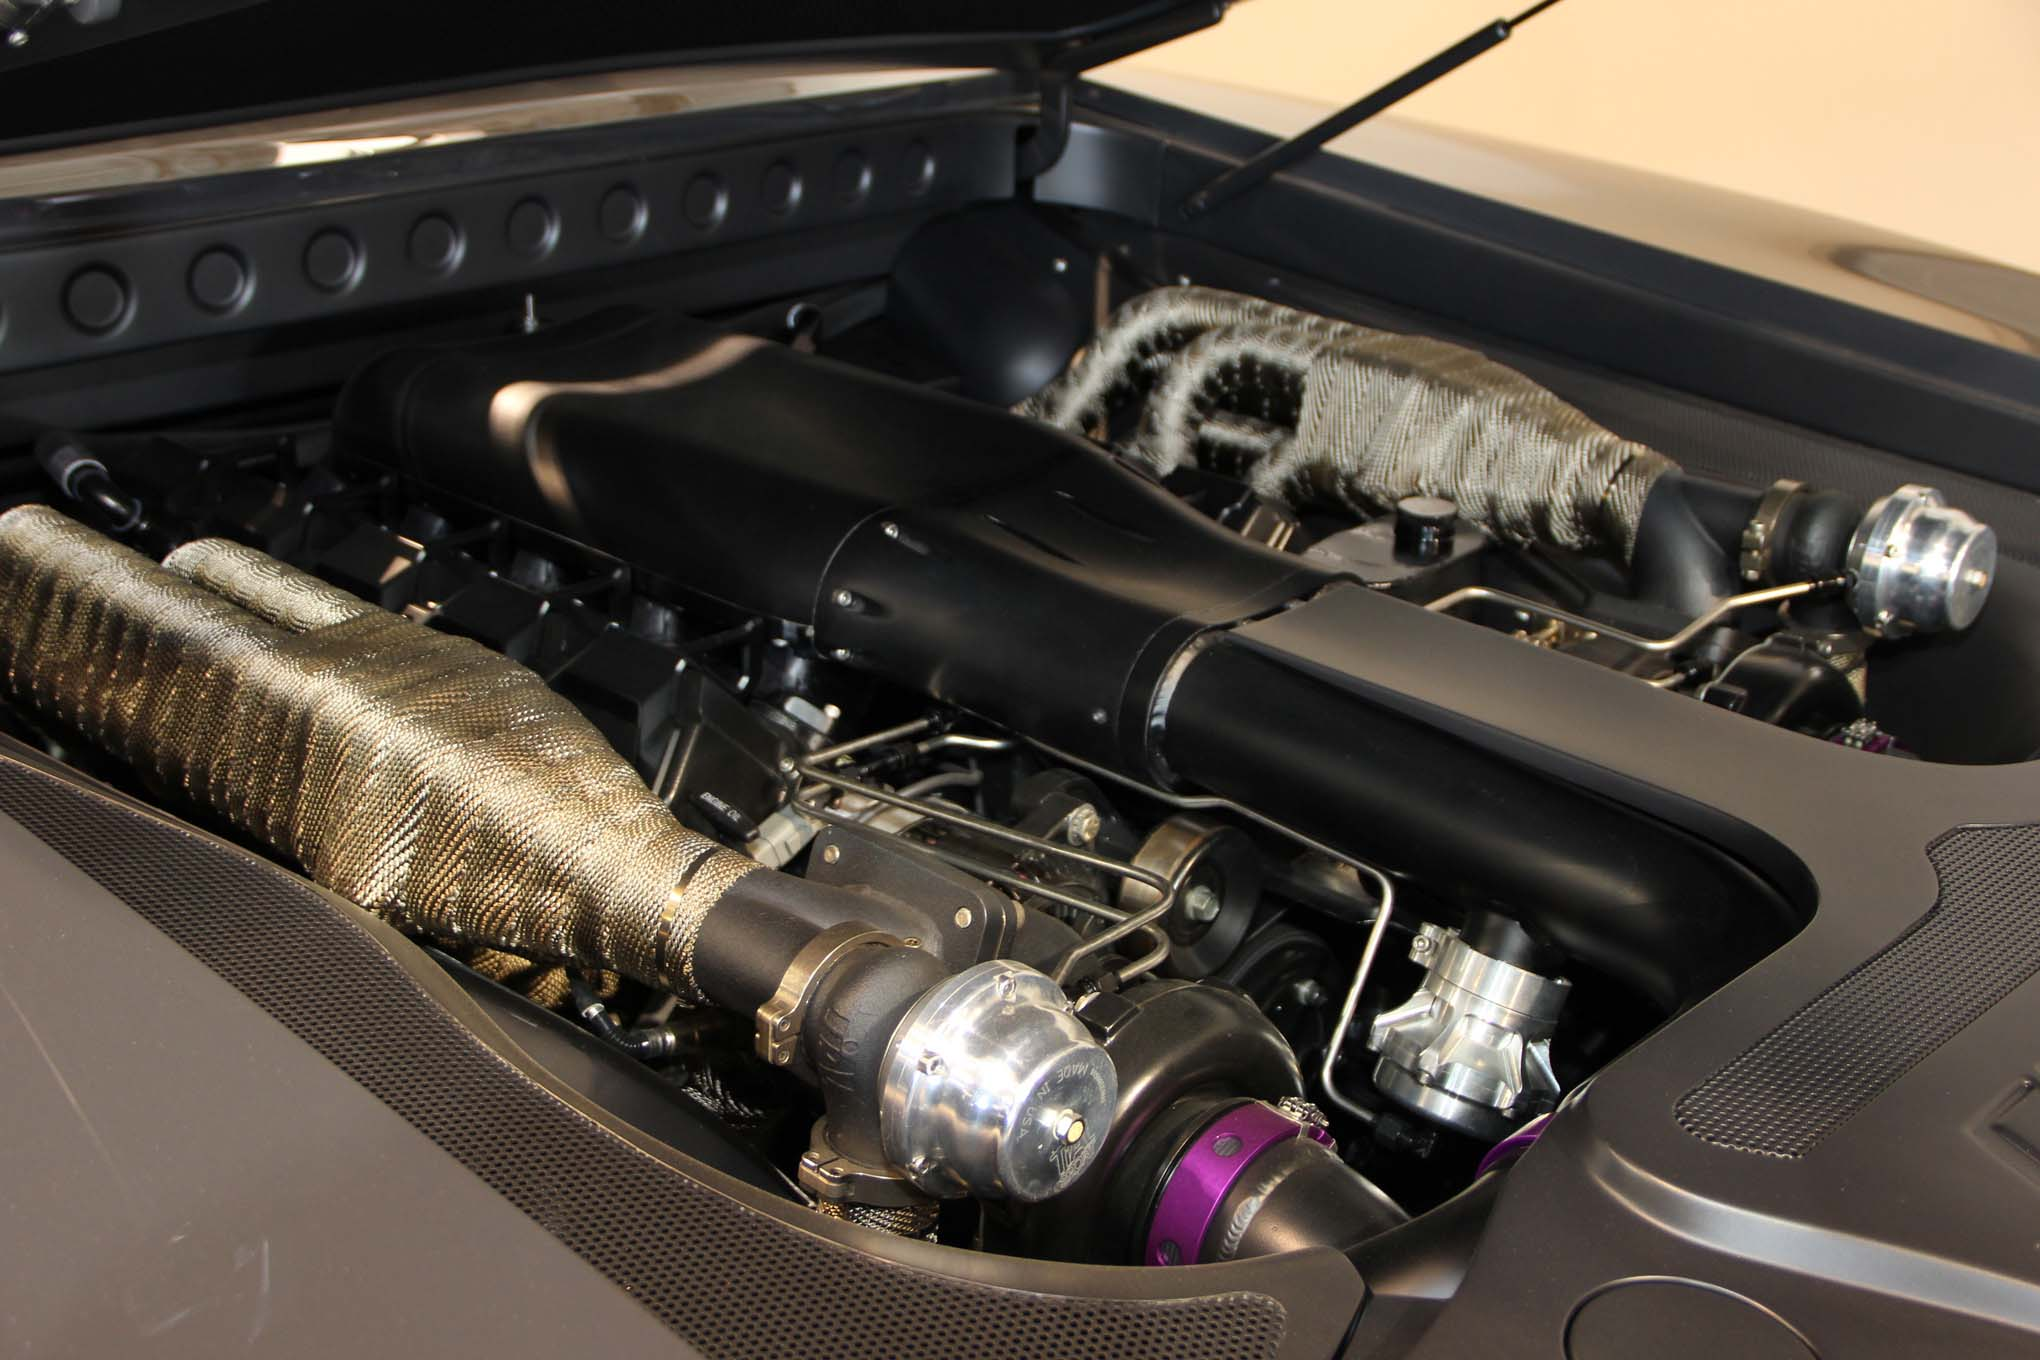 The power plant for the Charger is a twin turbo Viper V10. Need one?